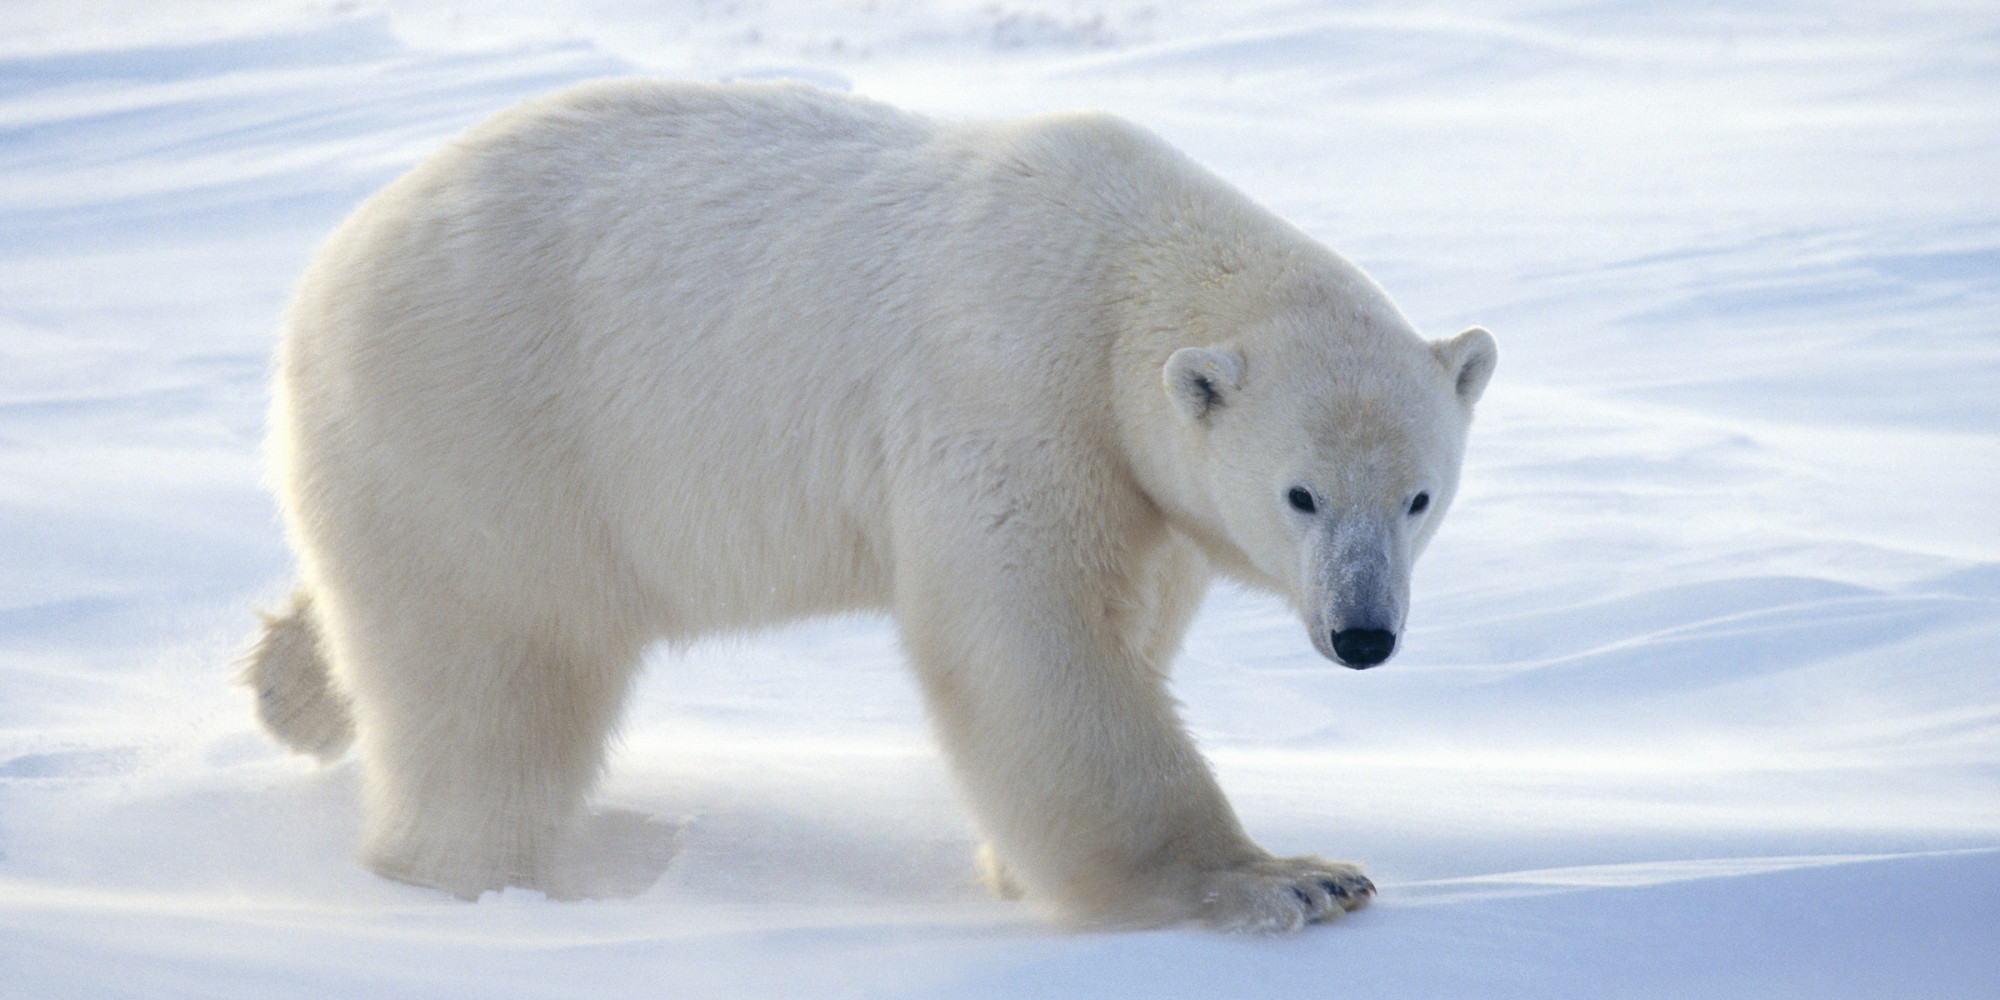 Antarctic Polar Bear